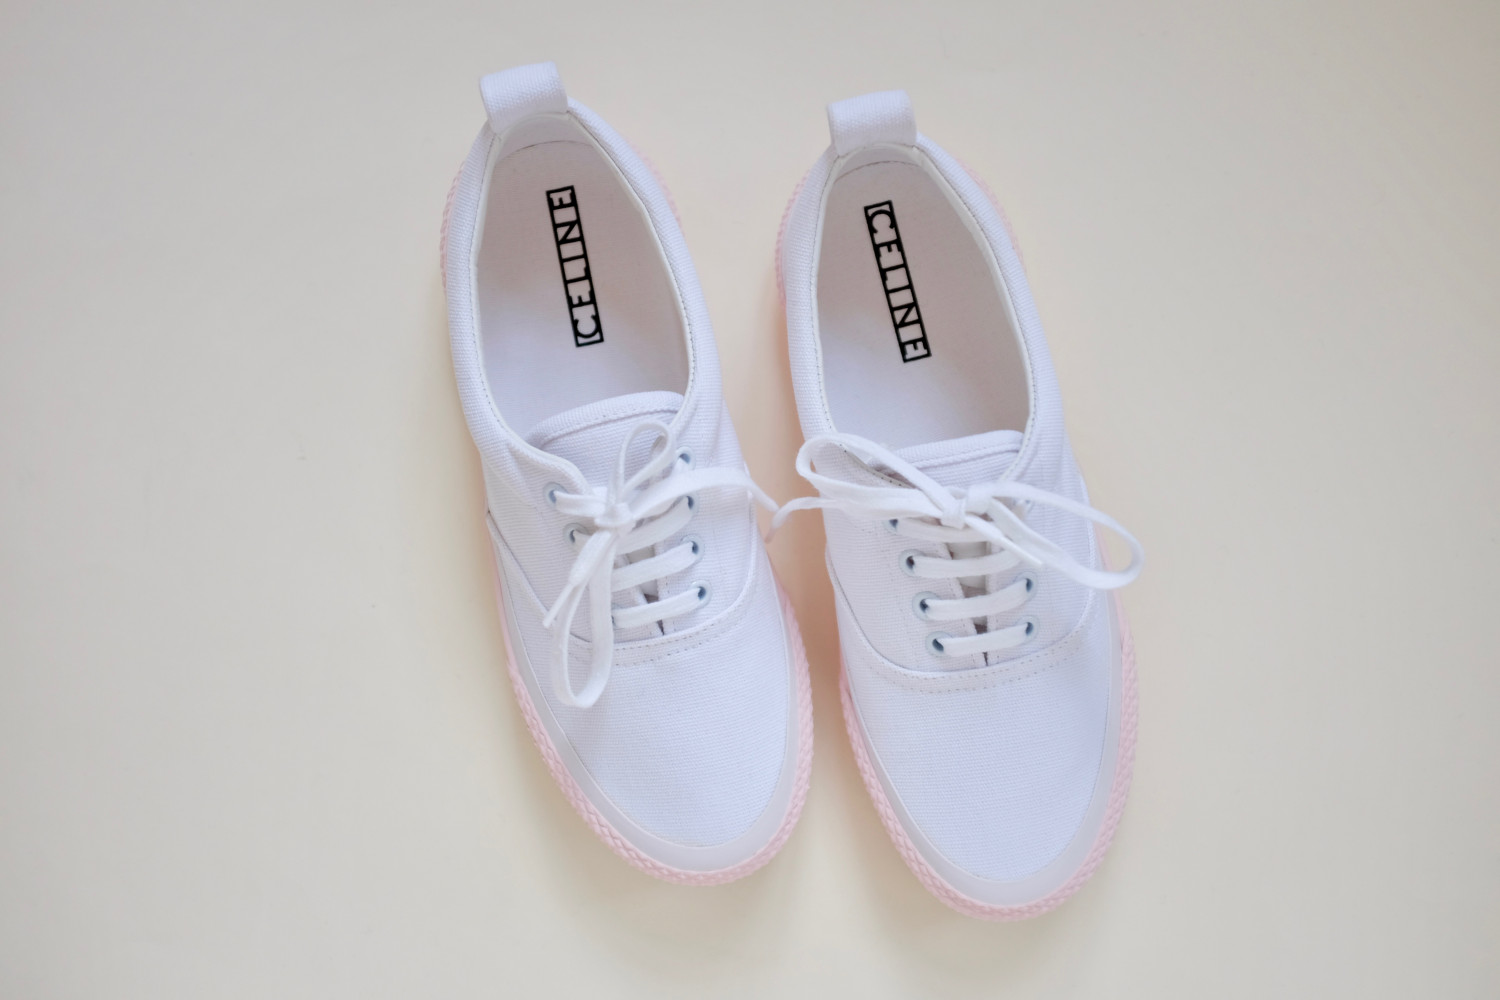 Candy Coloured Céline Sneakers